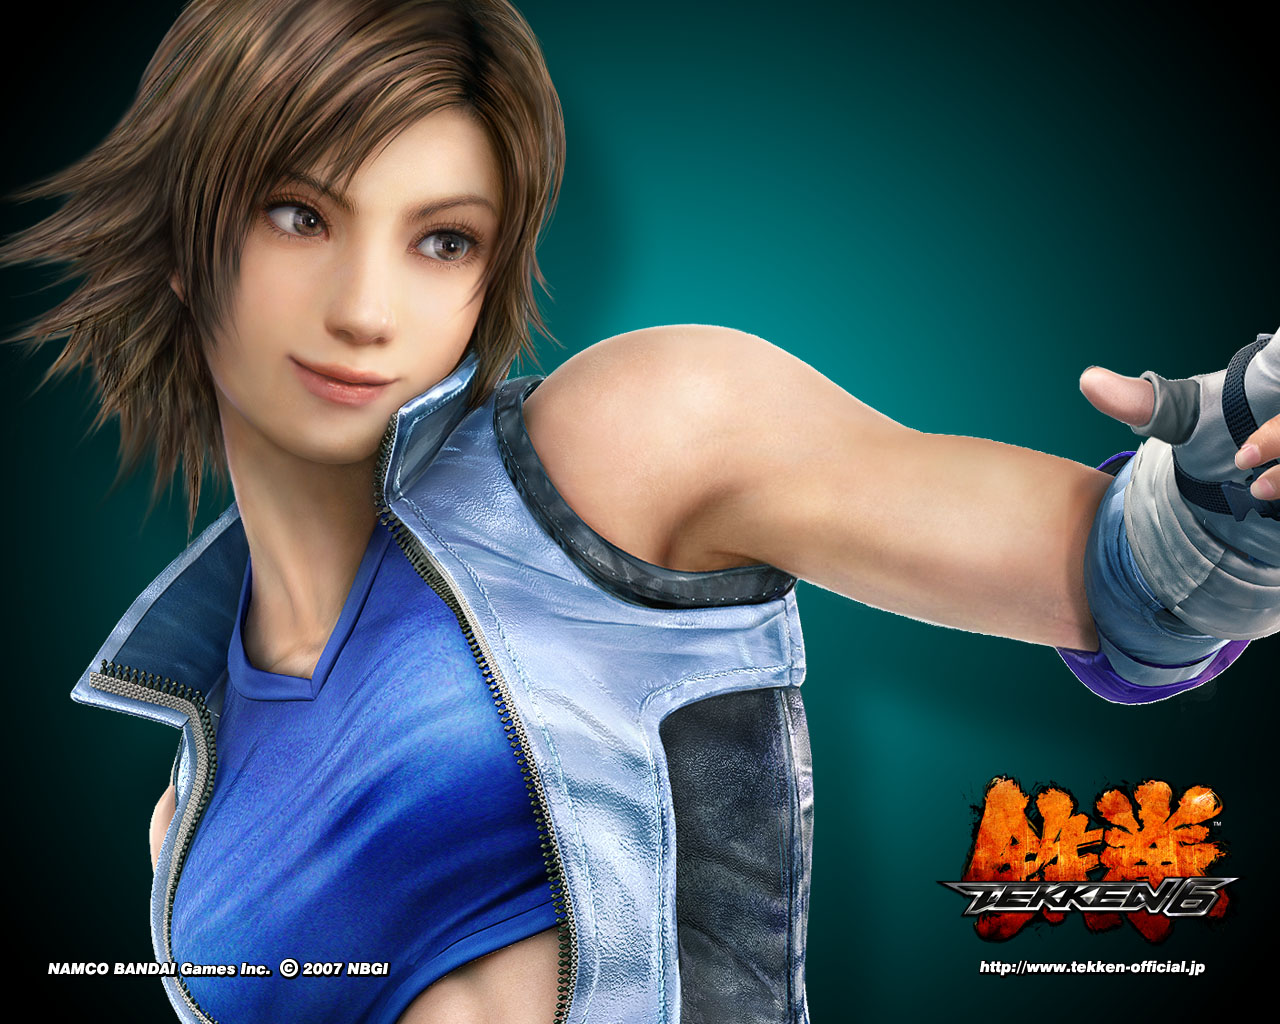 http://4.bp.blogspot.com/_i1U9iD5ZVv0/TLzWqMy5CKI/AAAAAAAACWo/aDE1PiQtKrU/s1600/ask+tekken+tag+tournament+wallpaper2.jpg